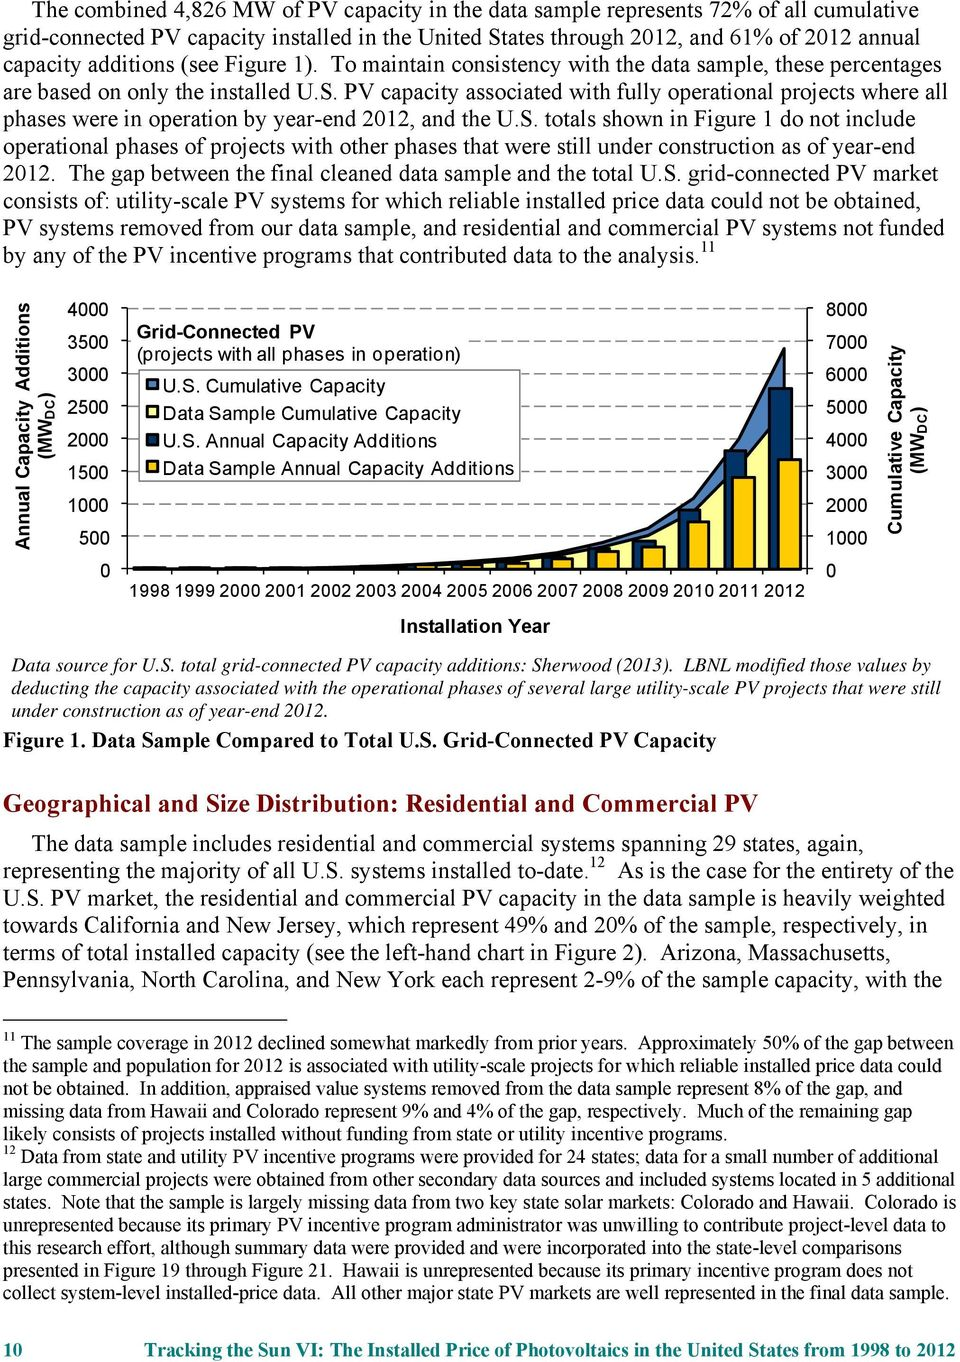 PV capacity associated with fully operational projects where all phases were in operation by year-end 2012, and the U.S.